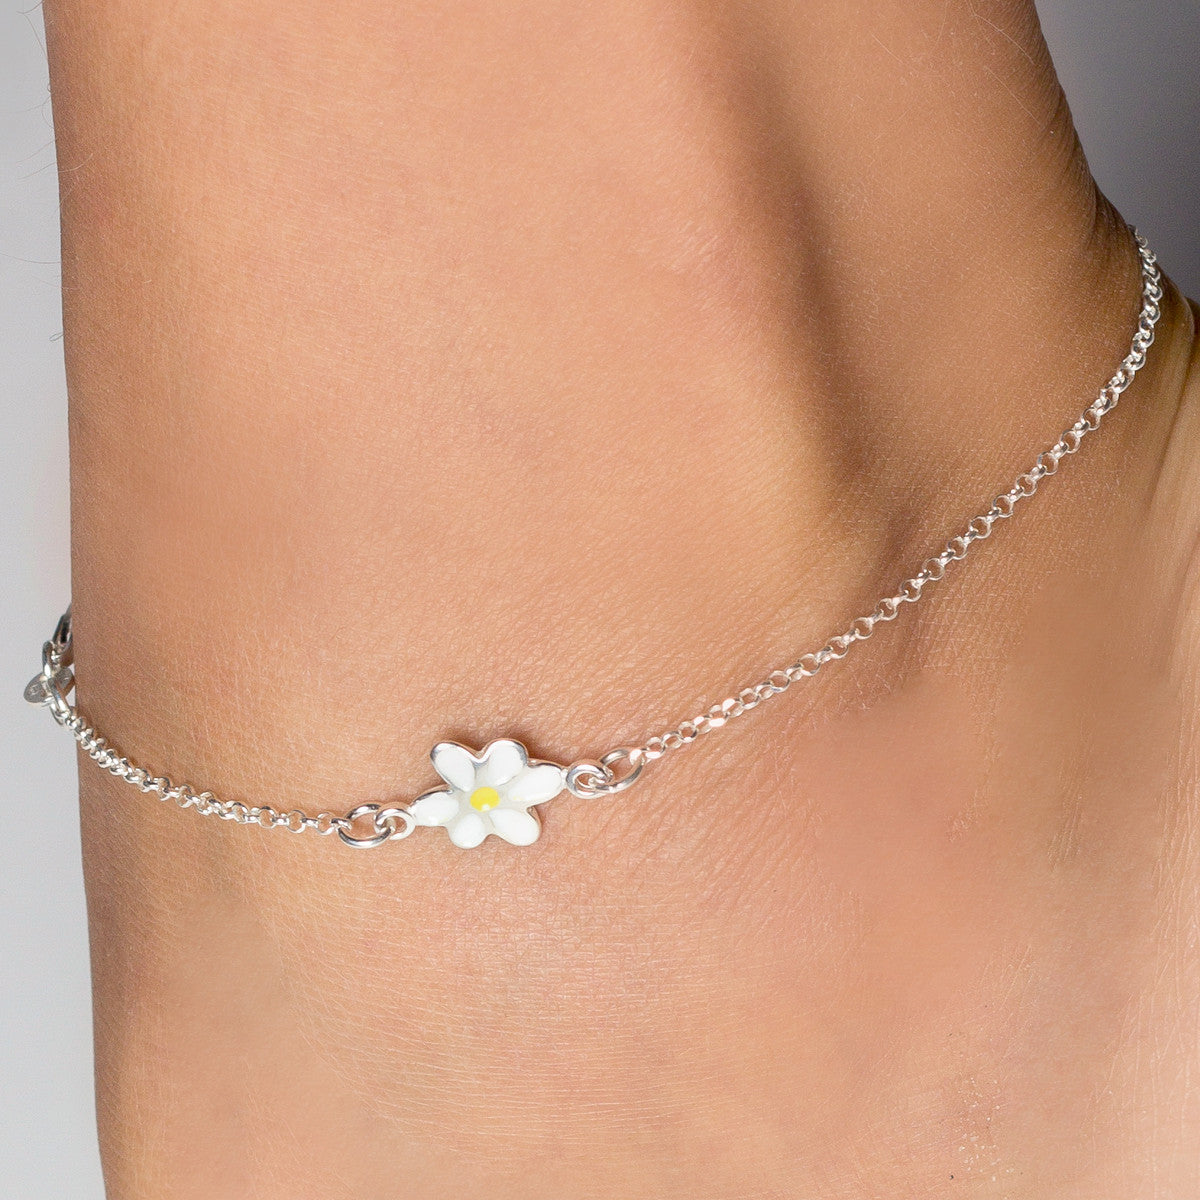 chain nana anklet collections finejwlry single bijou xsfeatheranklet productimg white ankle feather anklets products bracelet gold